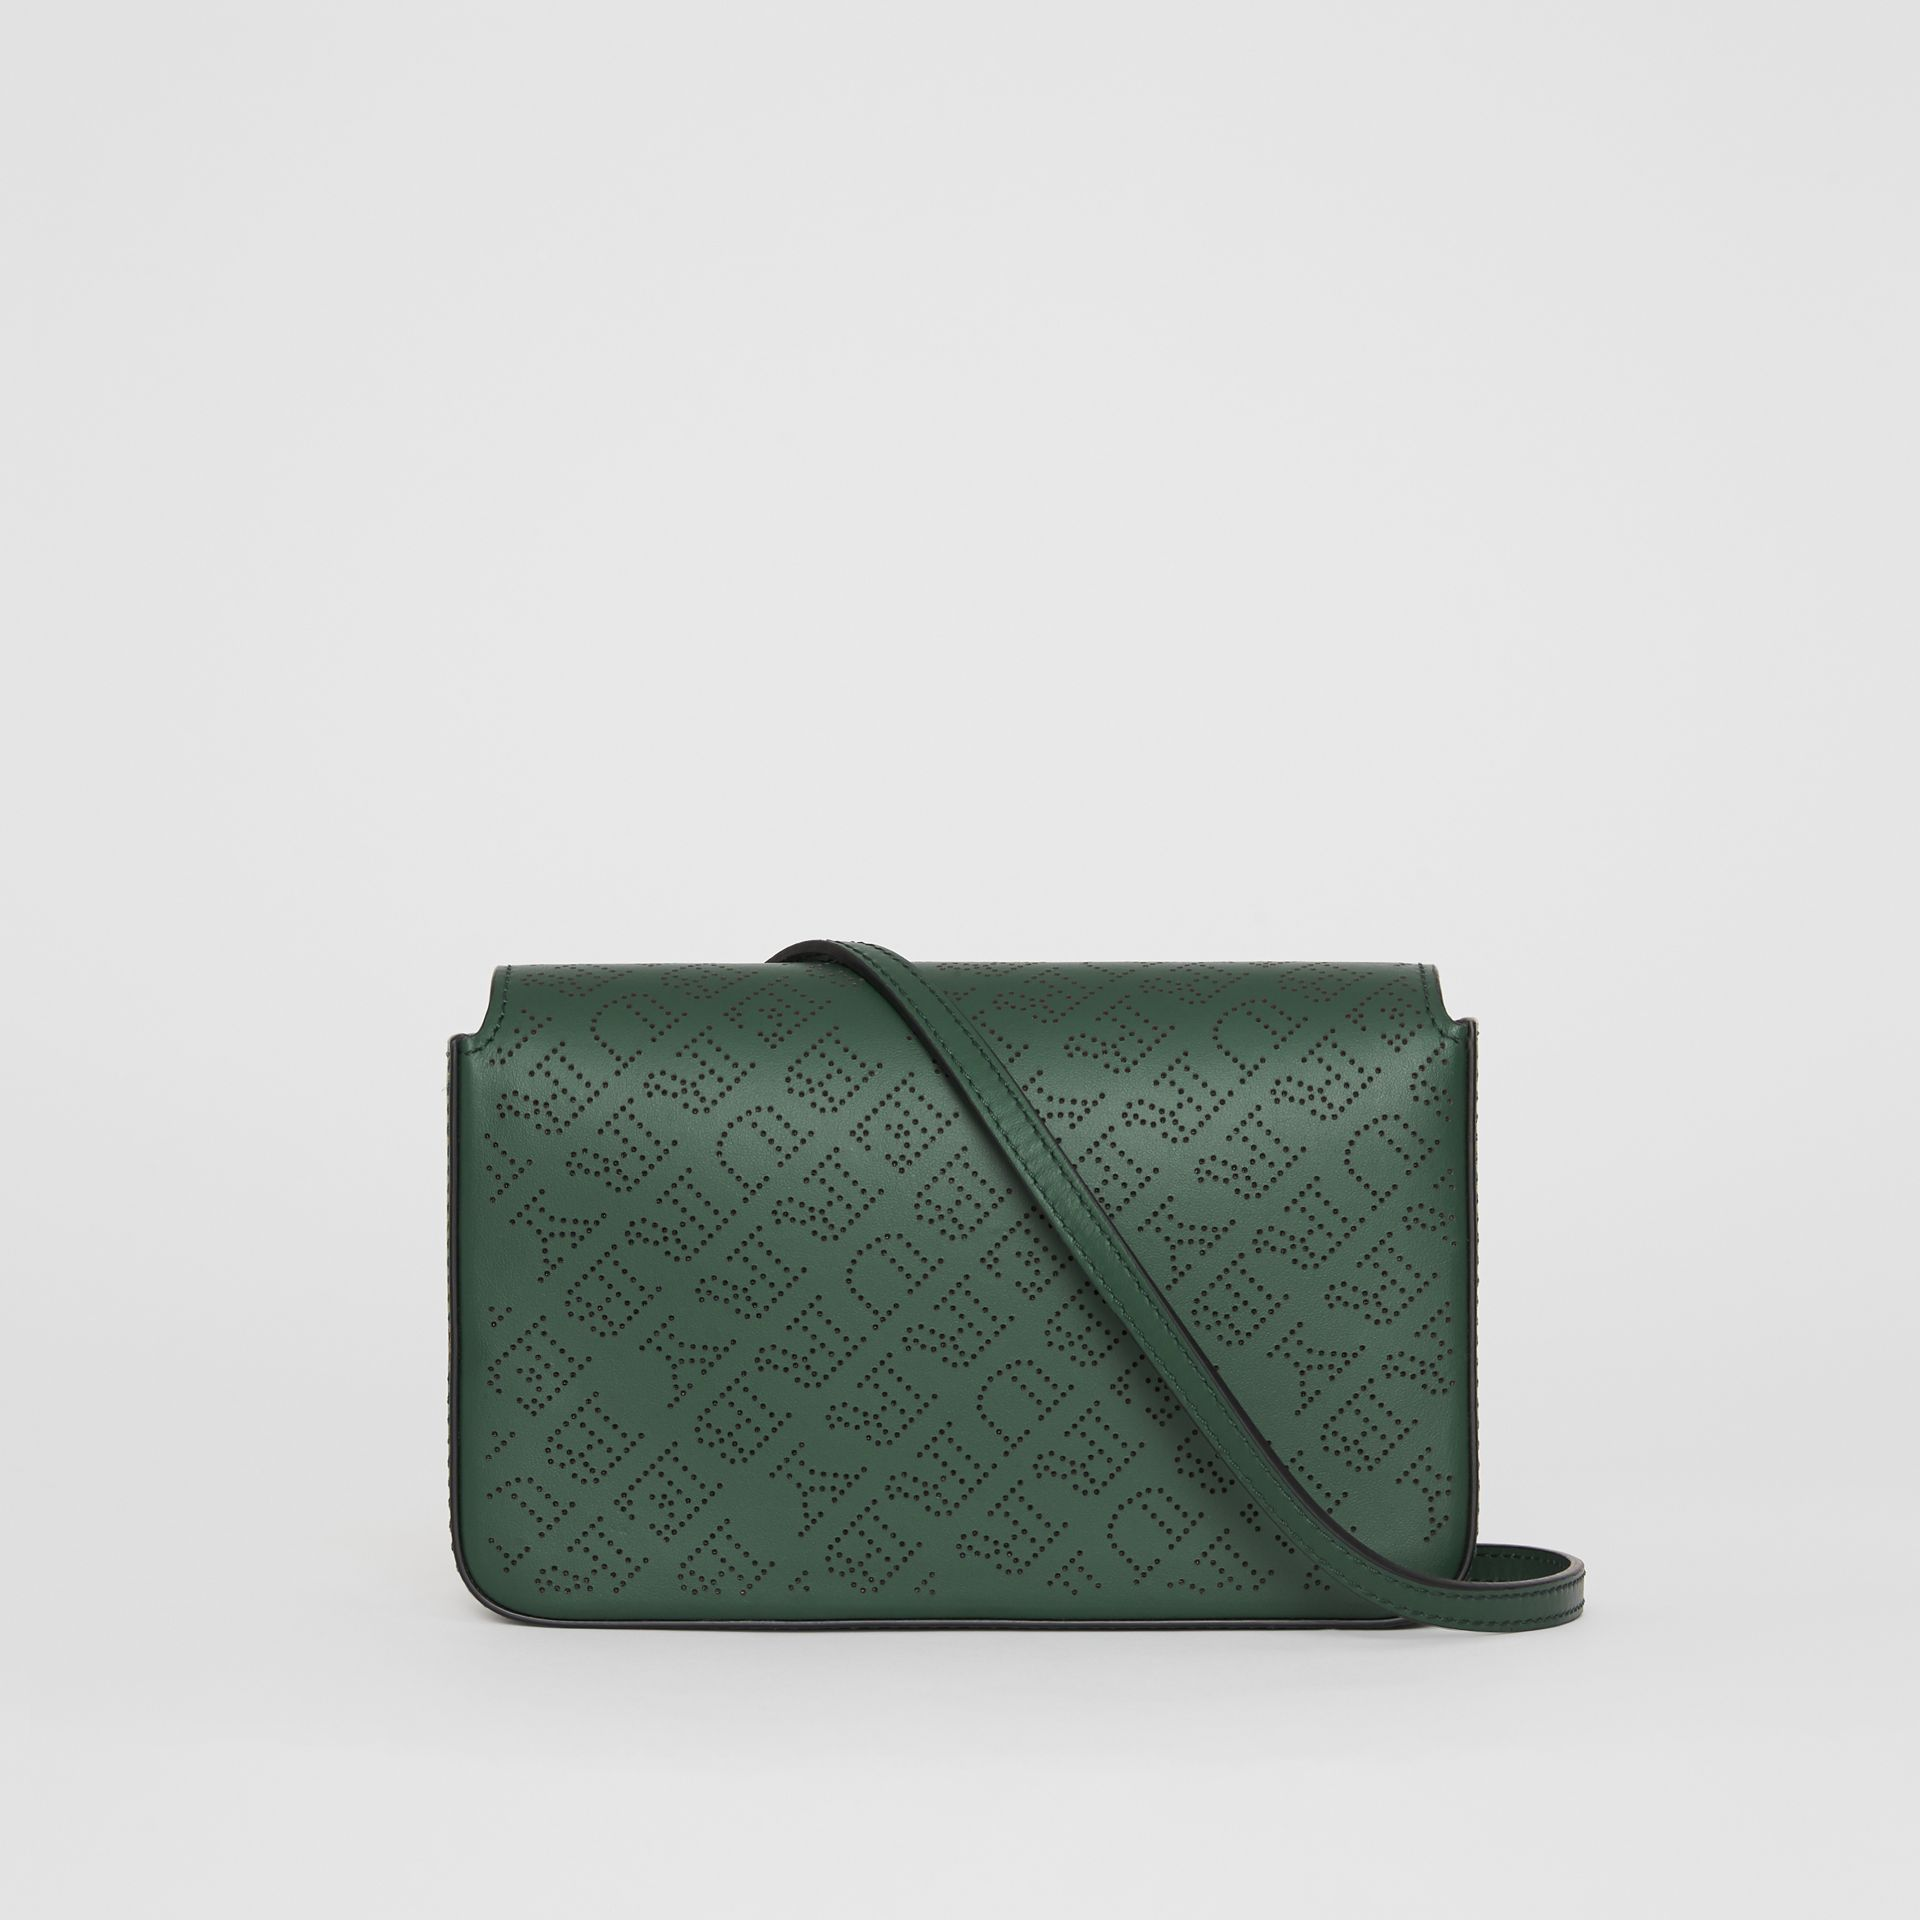 Perforated Logo Leather Wallet with Detachable Strap in Vintage Green - Women | Burberry - gallery image 7